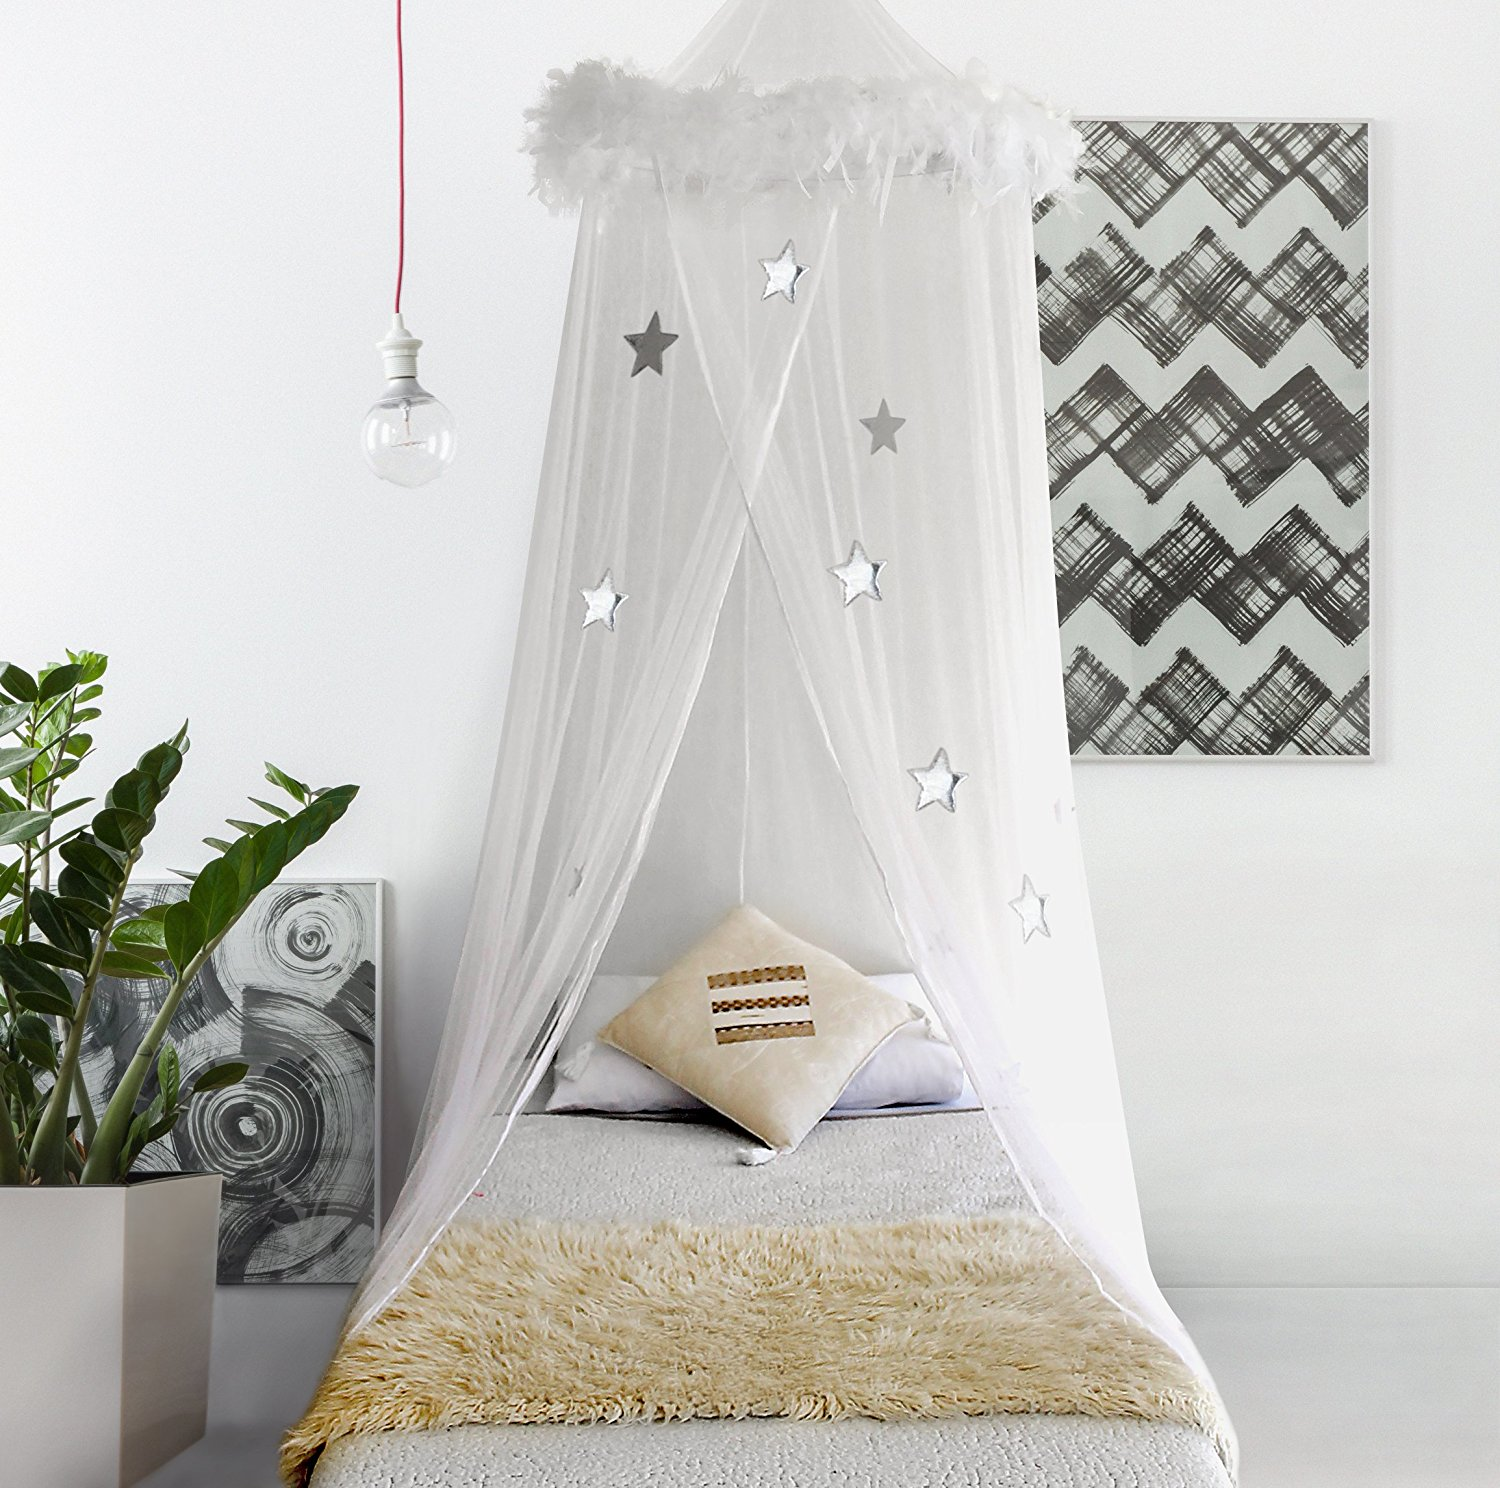 Canopy Bedroom Curtains: Bed Canopy Mosquito Net Curtains With Feathers And Stars